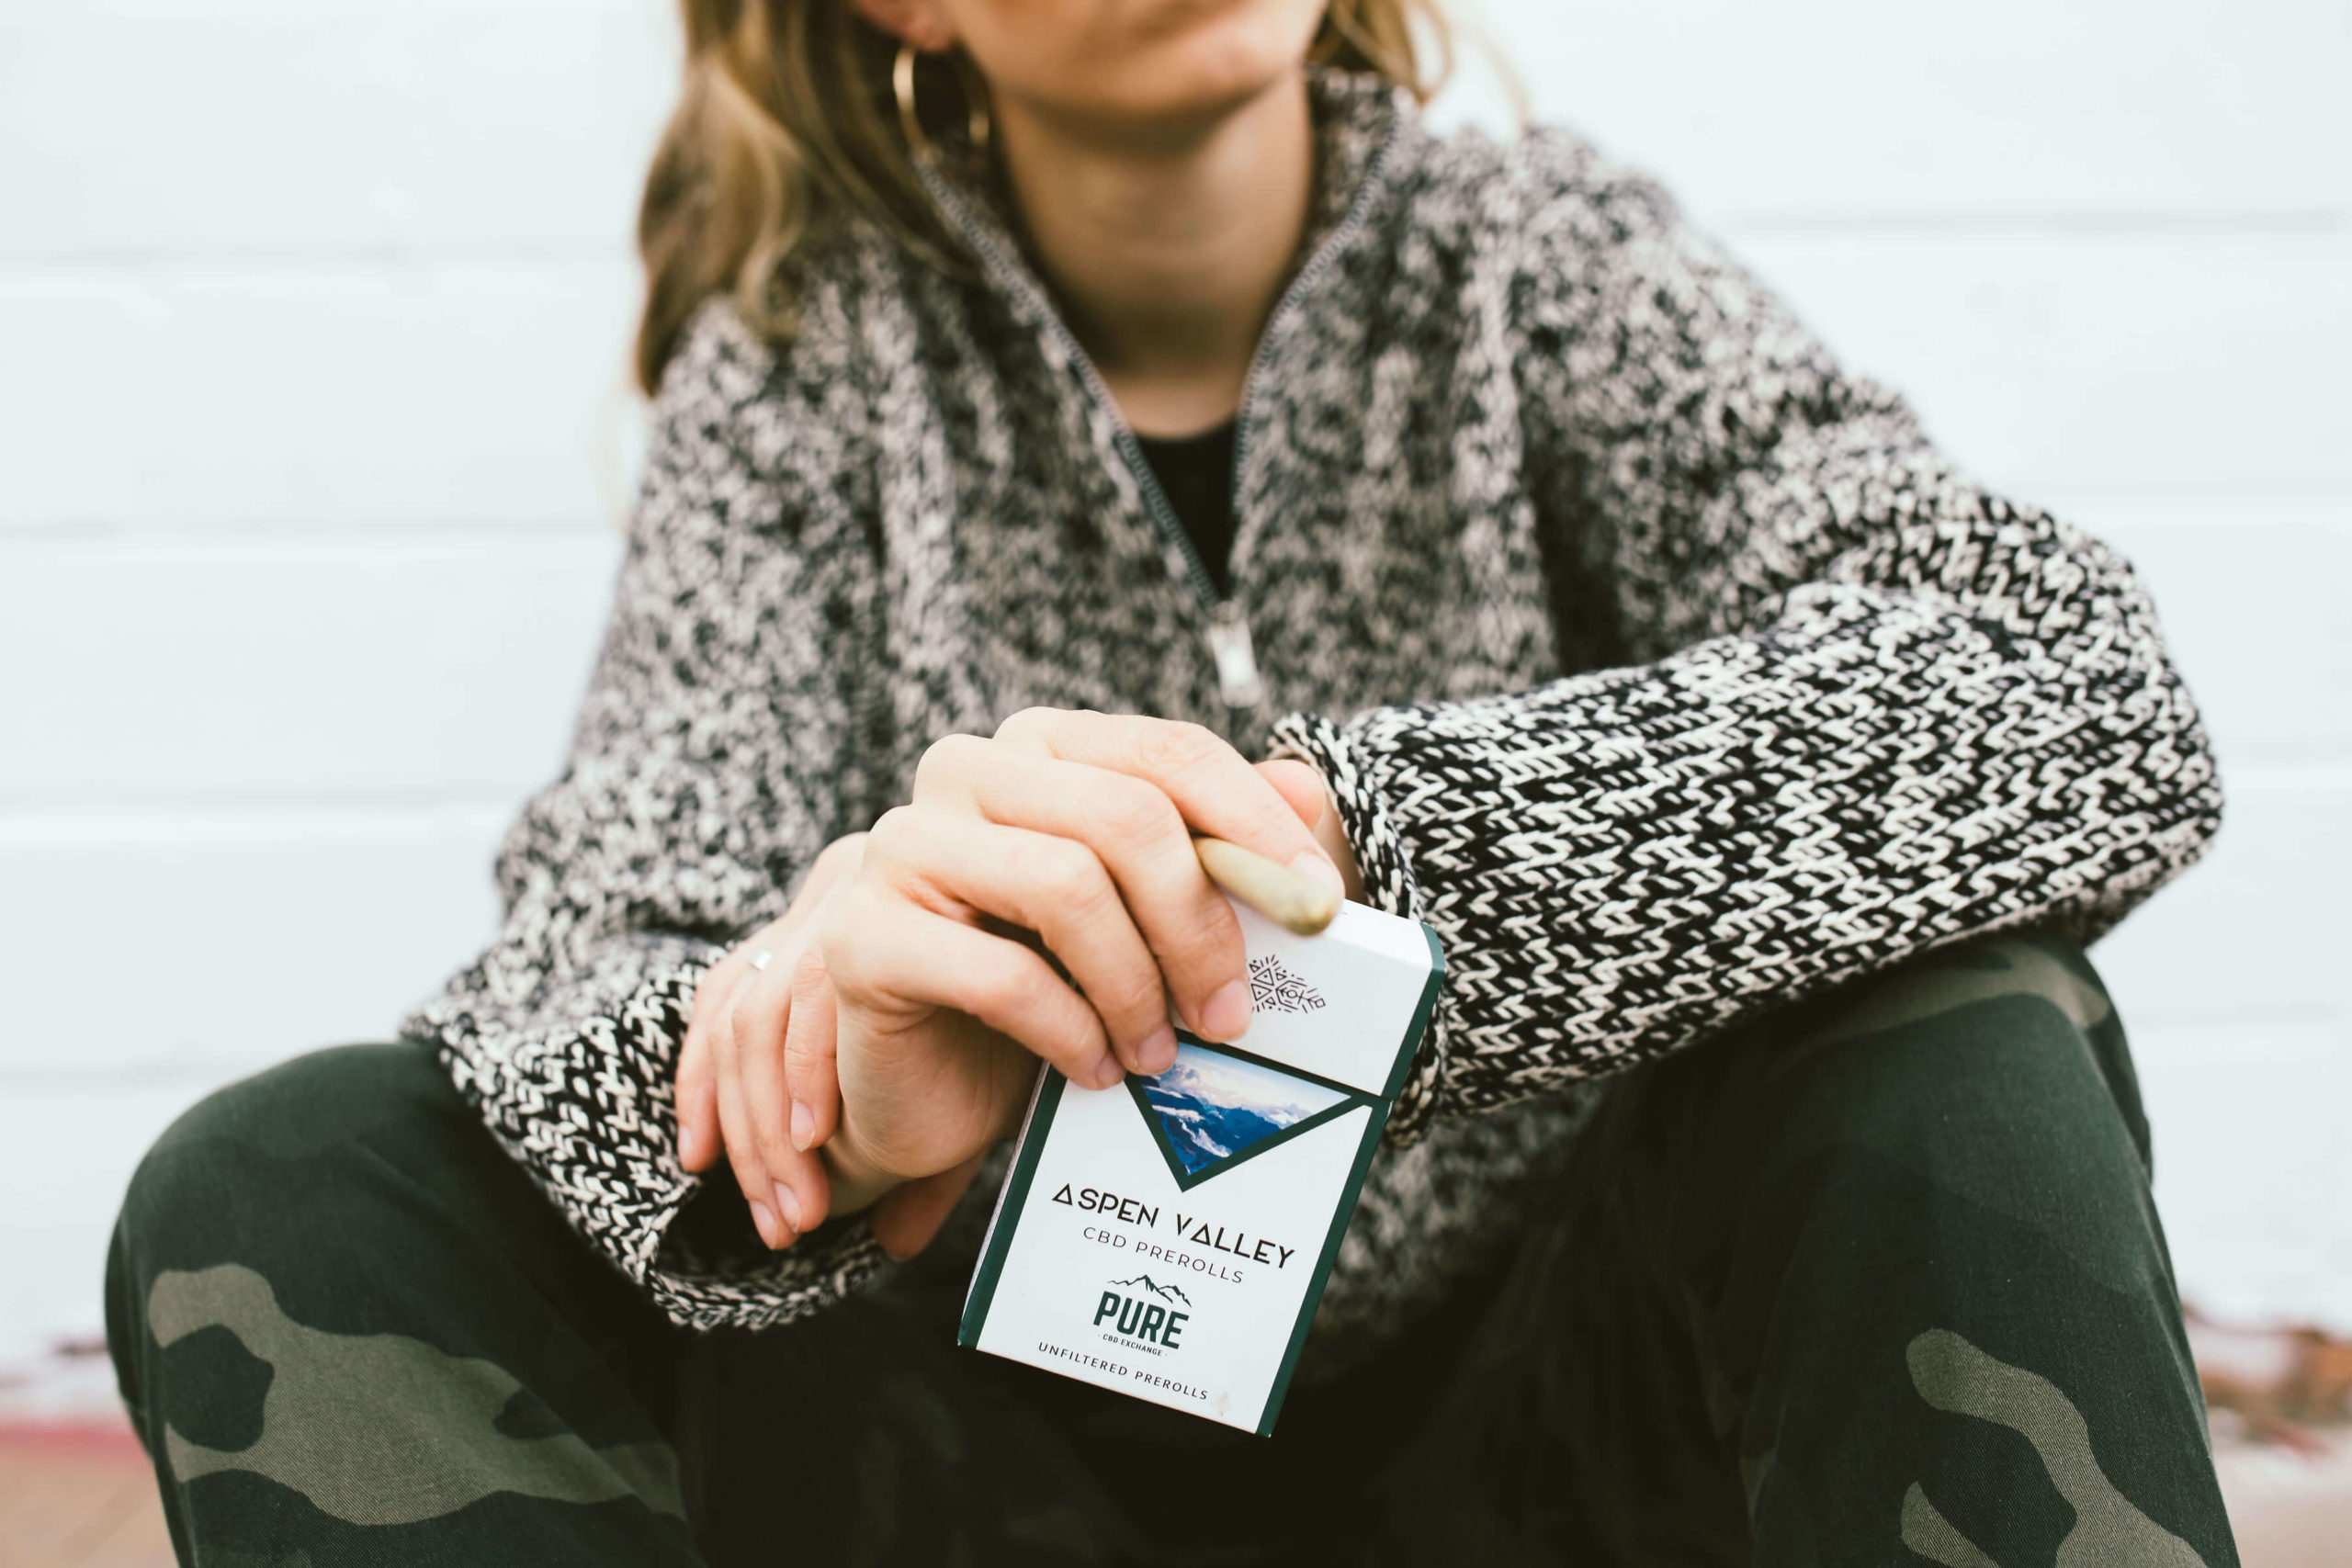 A girl sitting and holding a pack of Aspen Valley Hemp Company CBD Joints